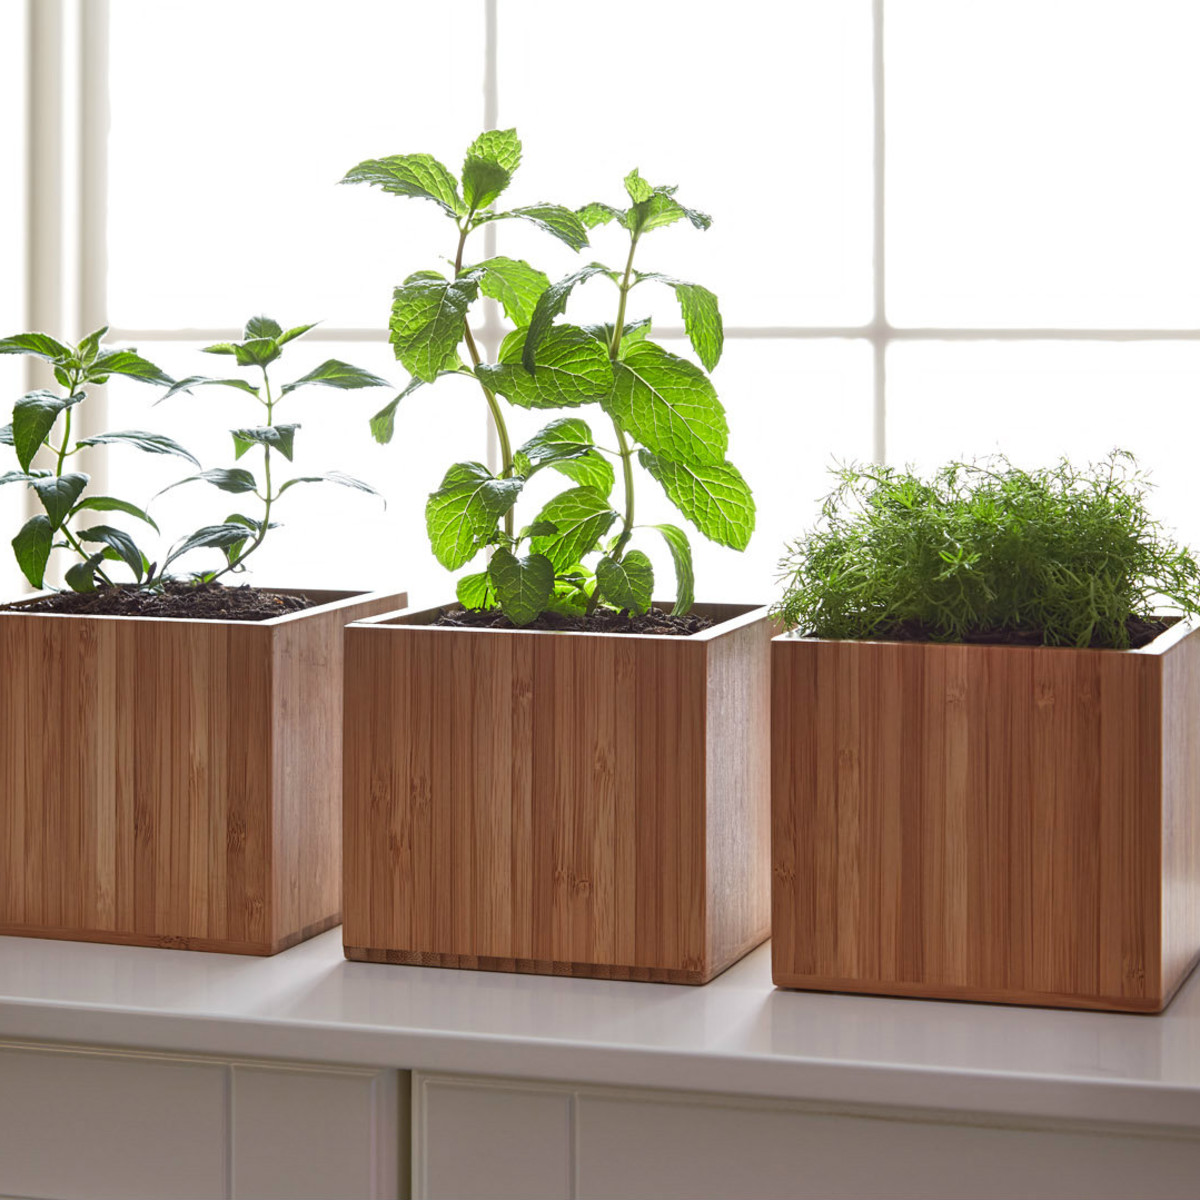 Grow boxes from Gardenuity